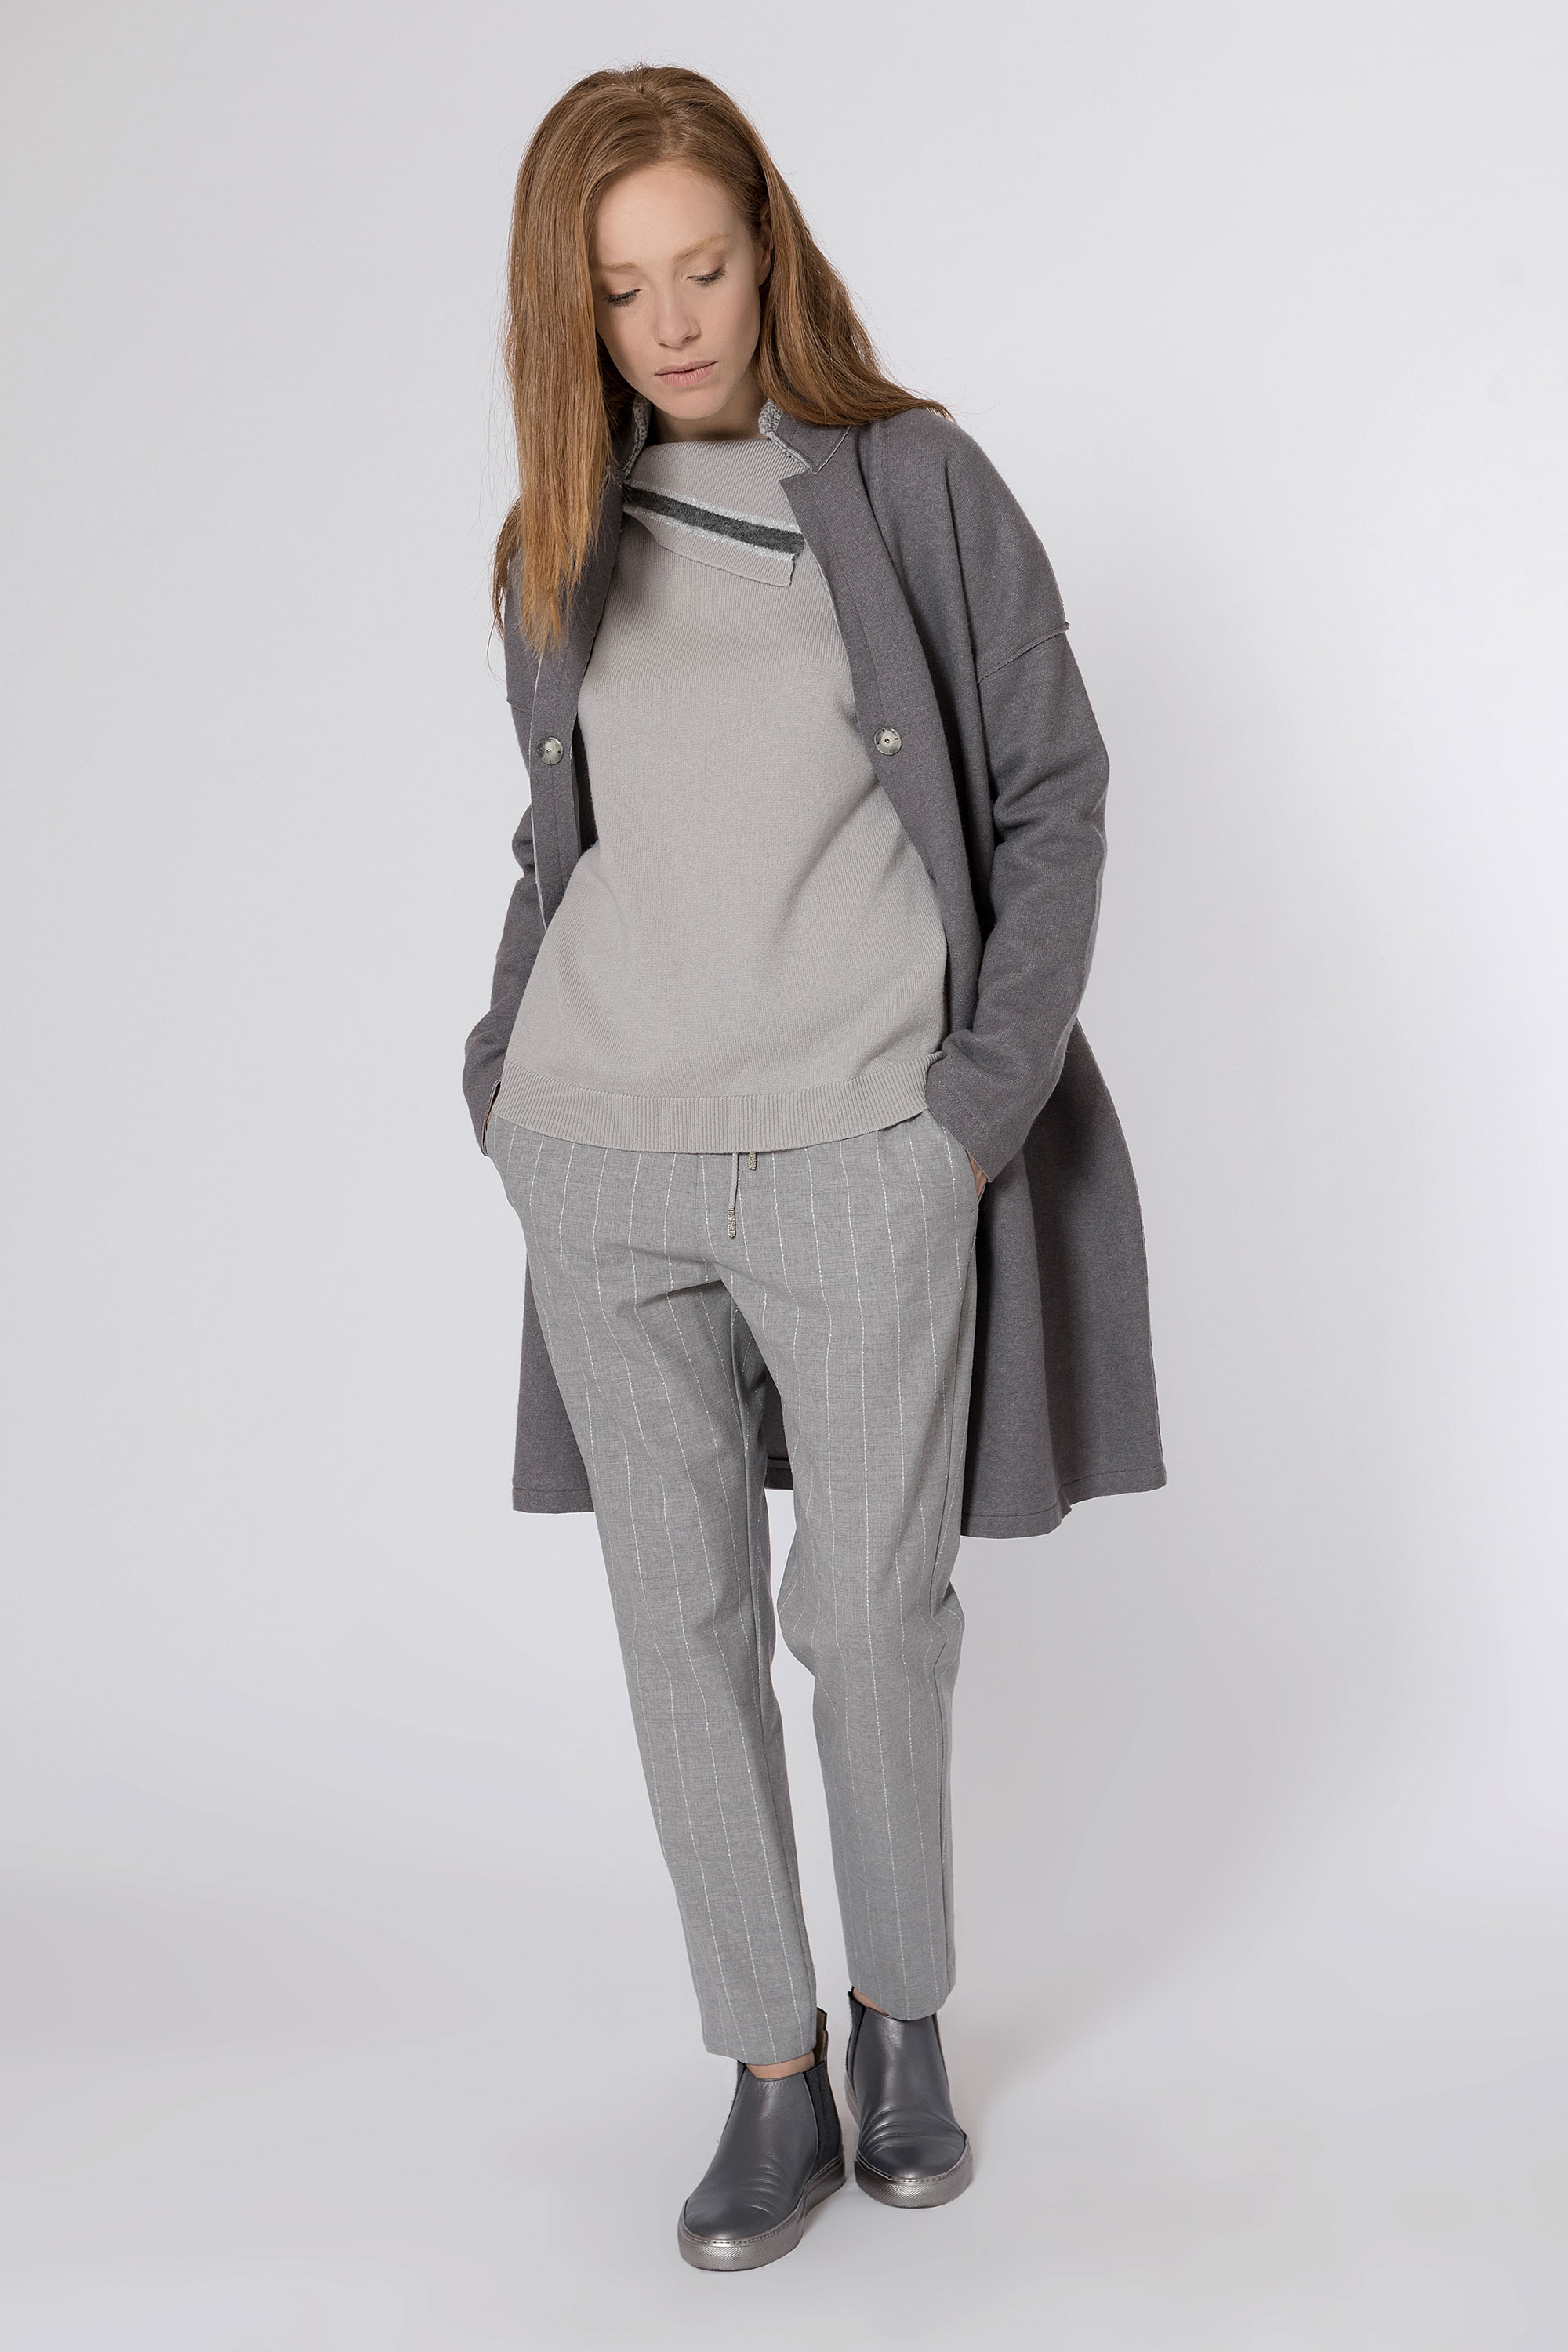 aee0d97e30d Italian Cashmere - Made in Italy | Shop Panicale Cashmere